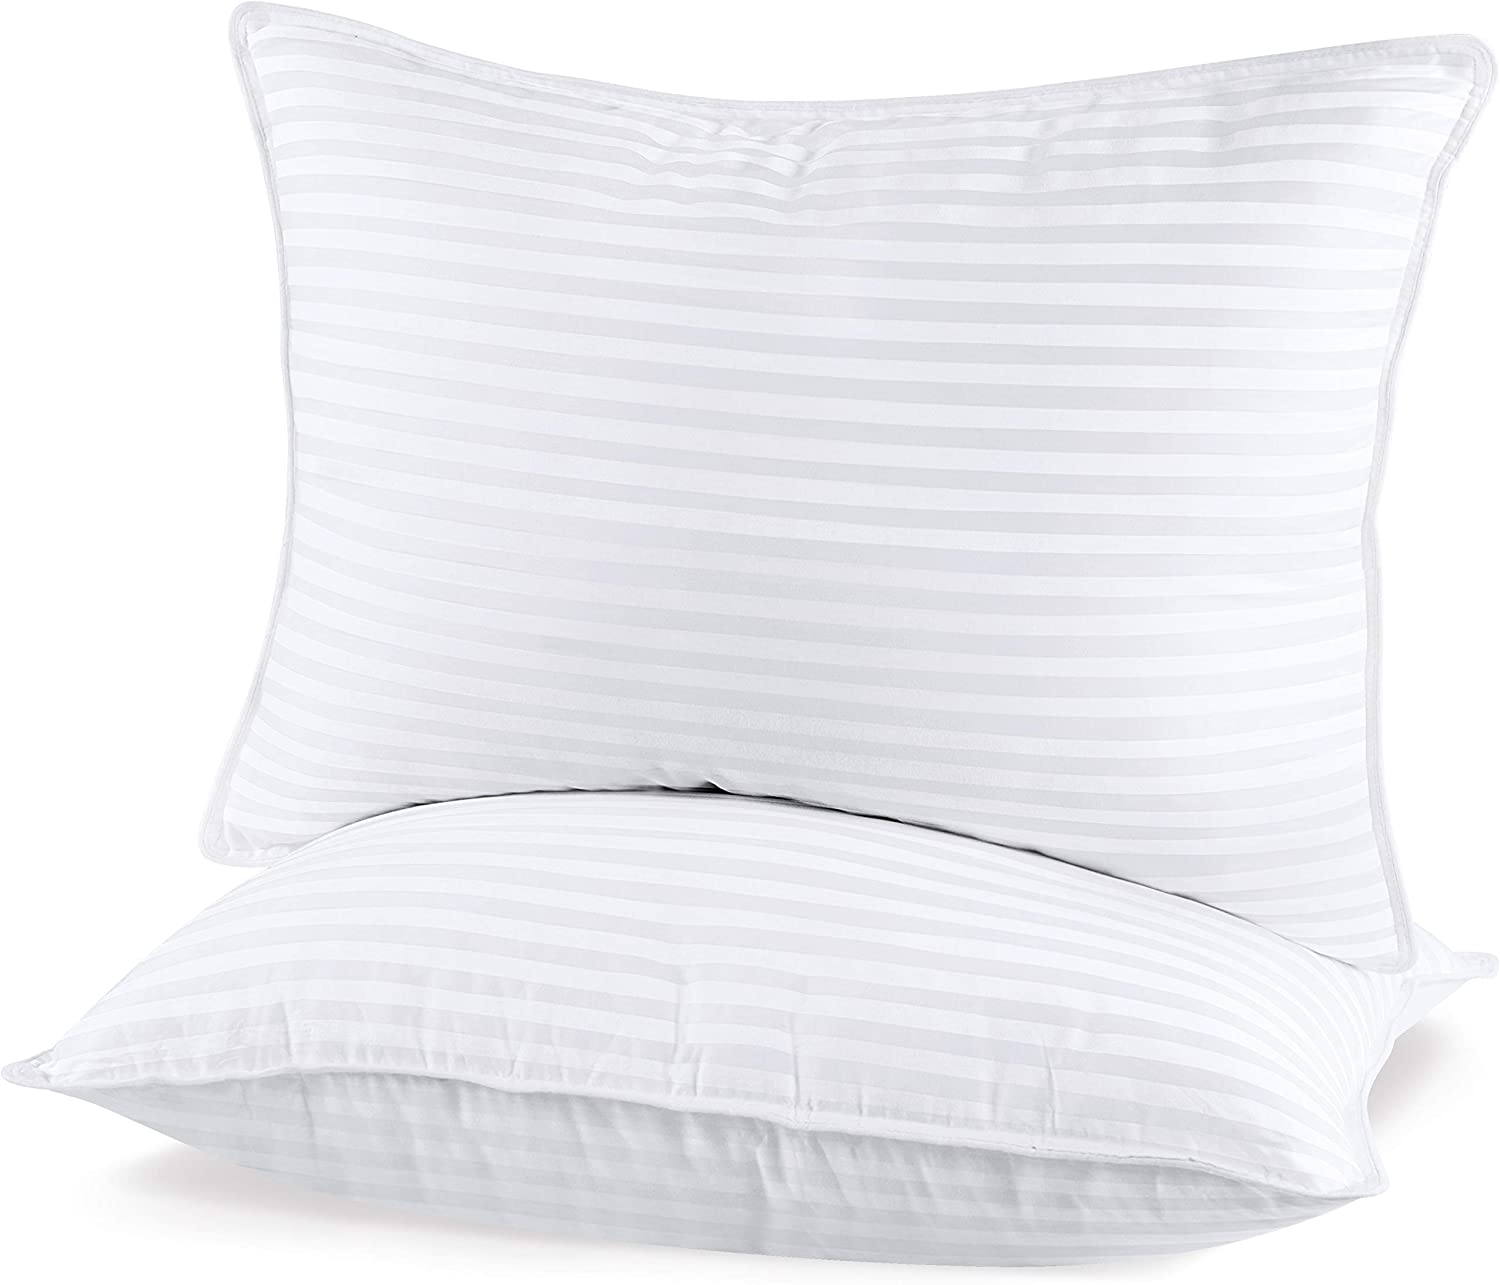 Utopia Bedding (2 Pack Premium Plush Gel Pillow - Fiber Filled Bed Pillows - King Size 20 x 36 Inches - Cotton Pillows for Sleeping - Fluffy and Soft Pillows